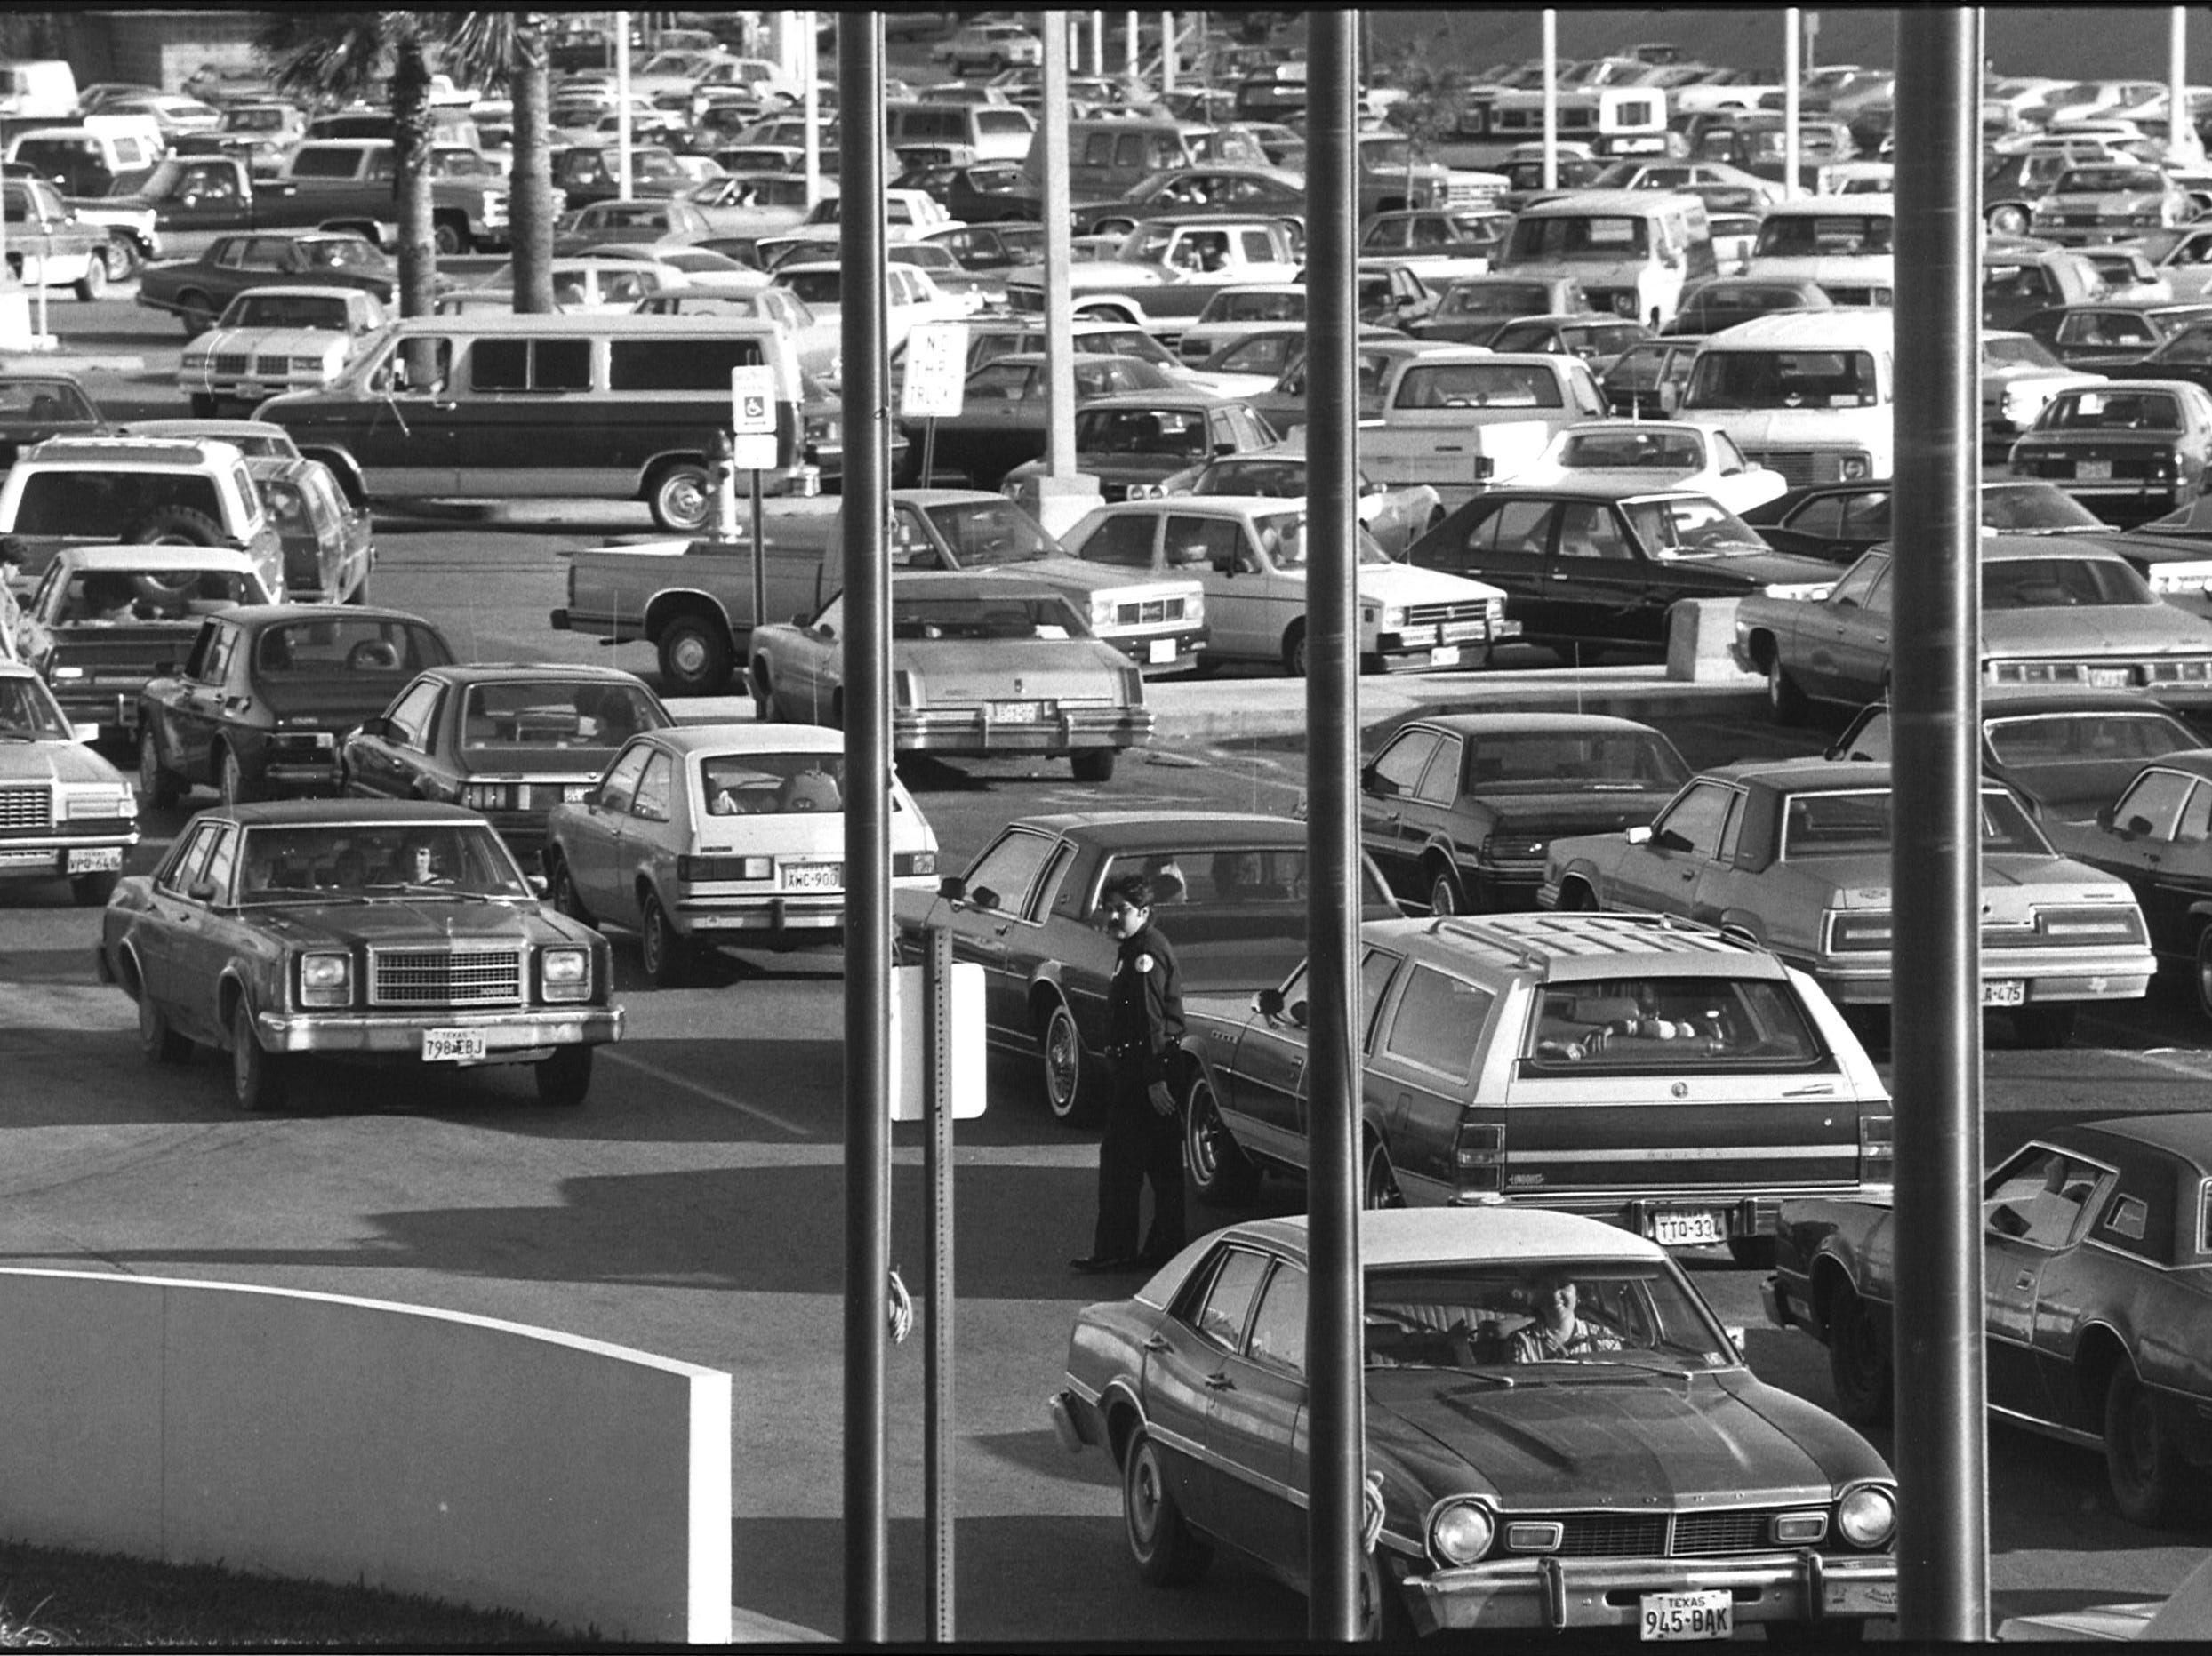 Special officer Martin Reyna Jr., with Sunrise Mall security monitors the parking lot and traffic in Nov. 25, 1983.